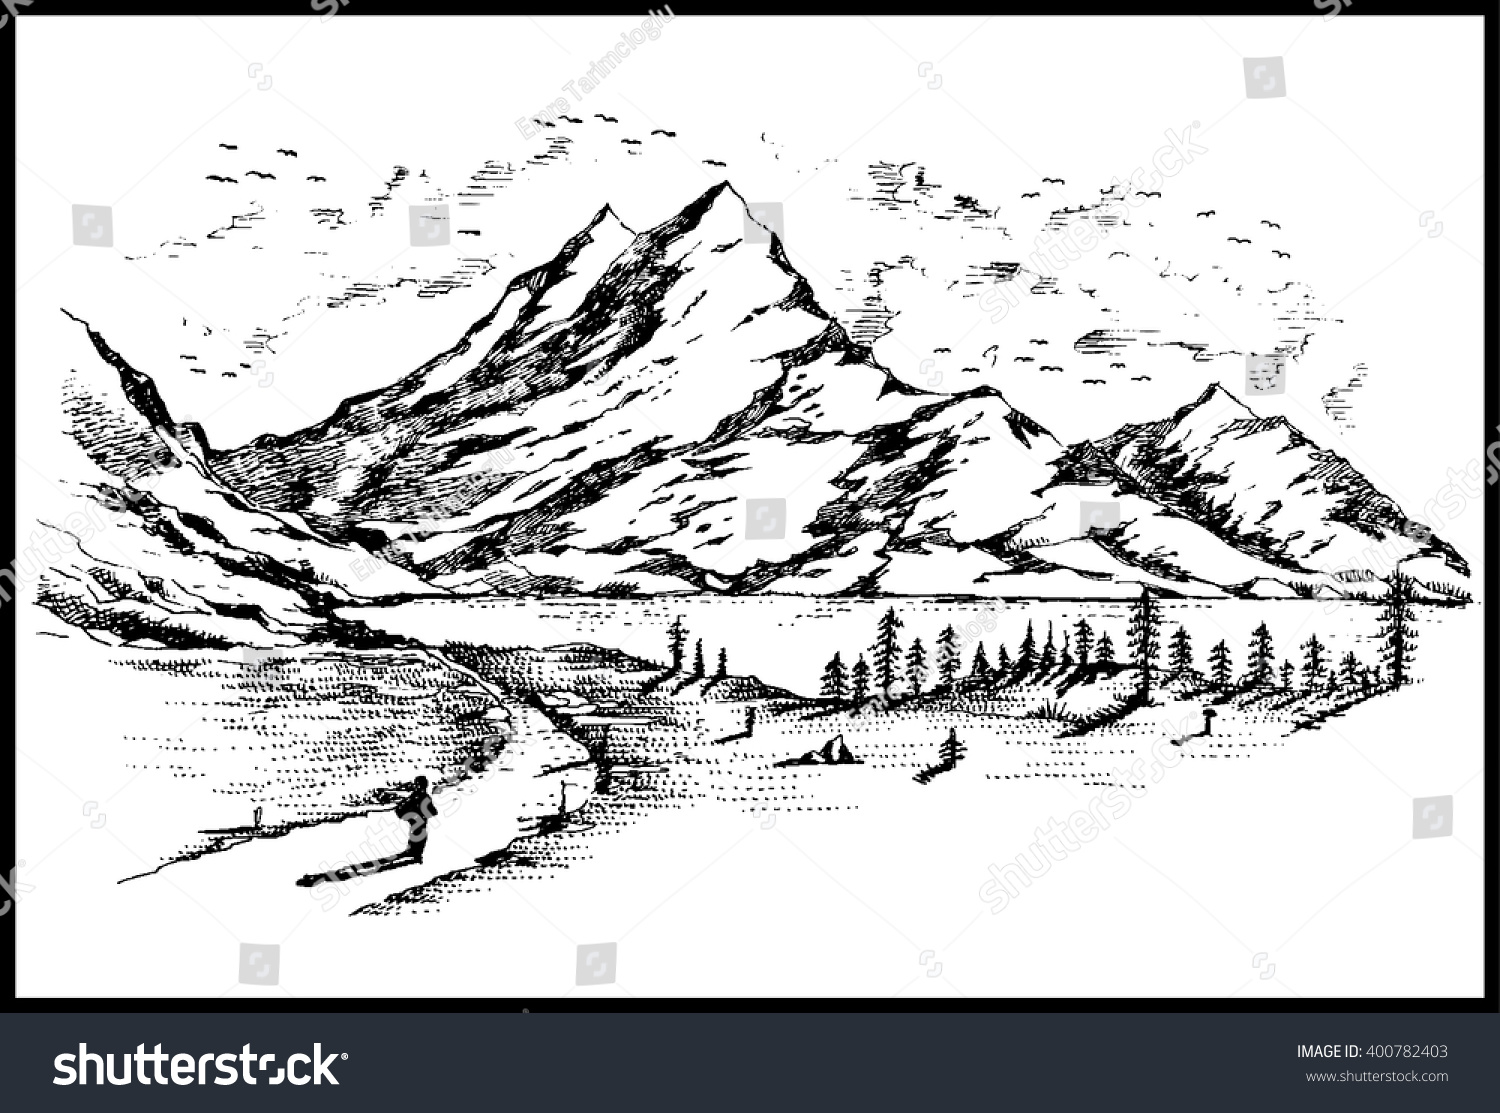 Hand Drawn Black White Mountain Landscape Stock Vector (Royalty Free ...